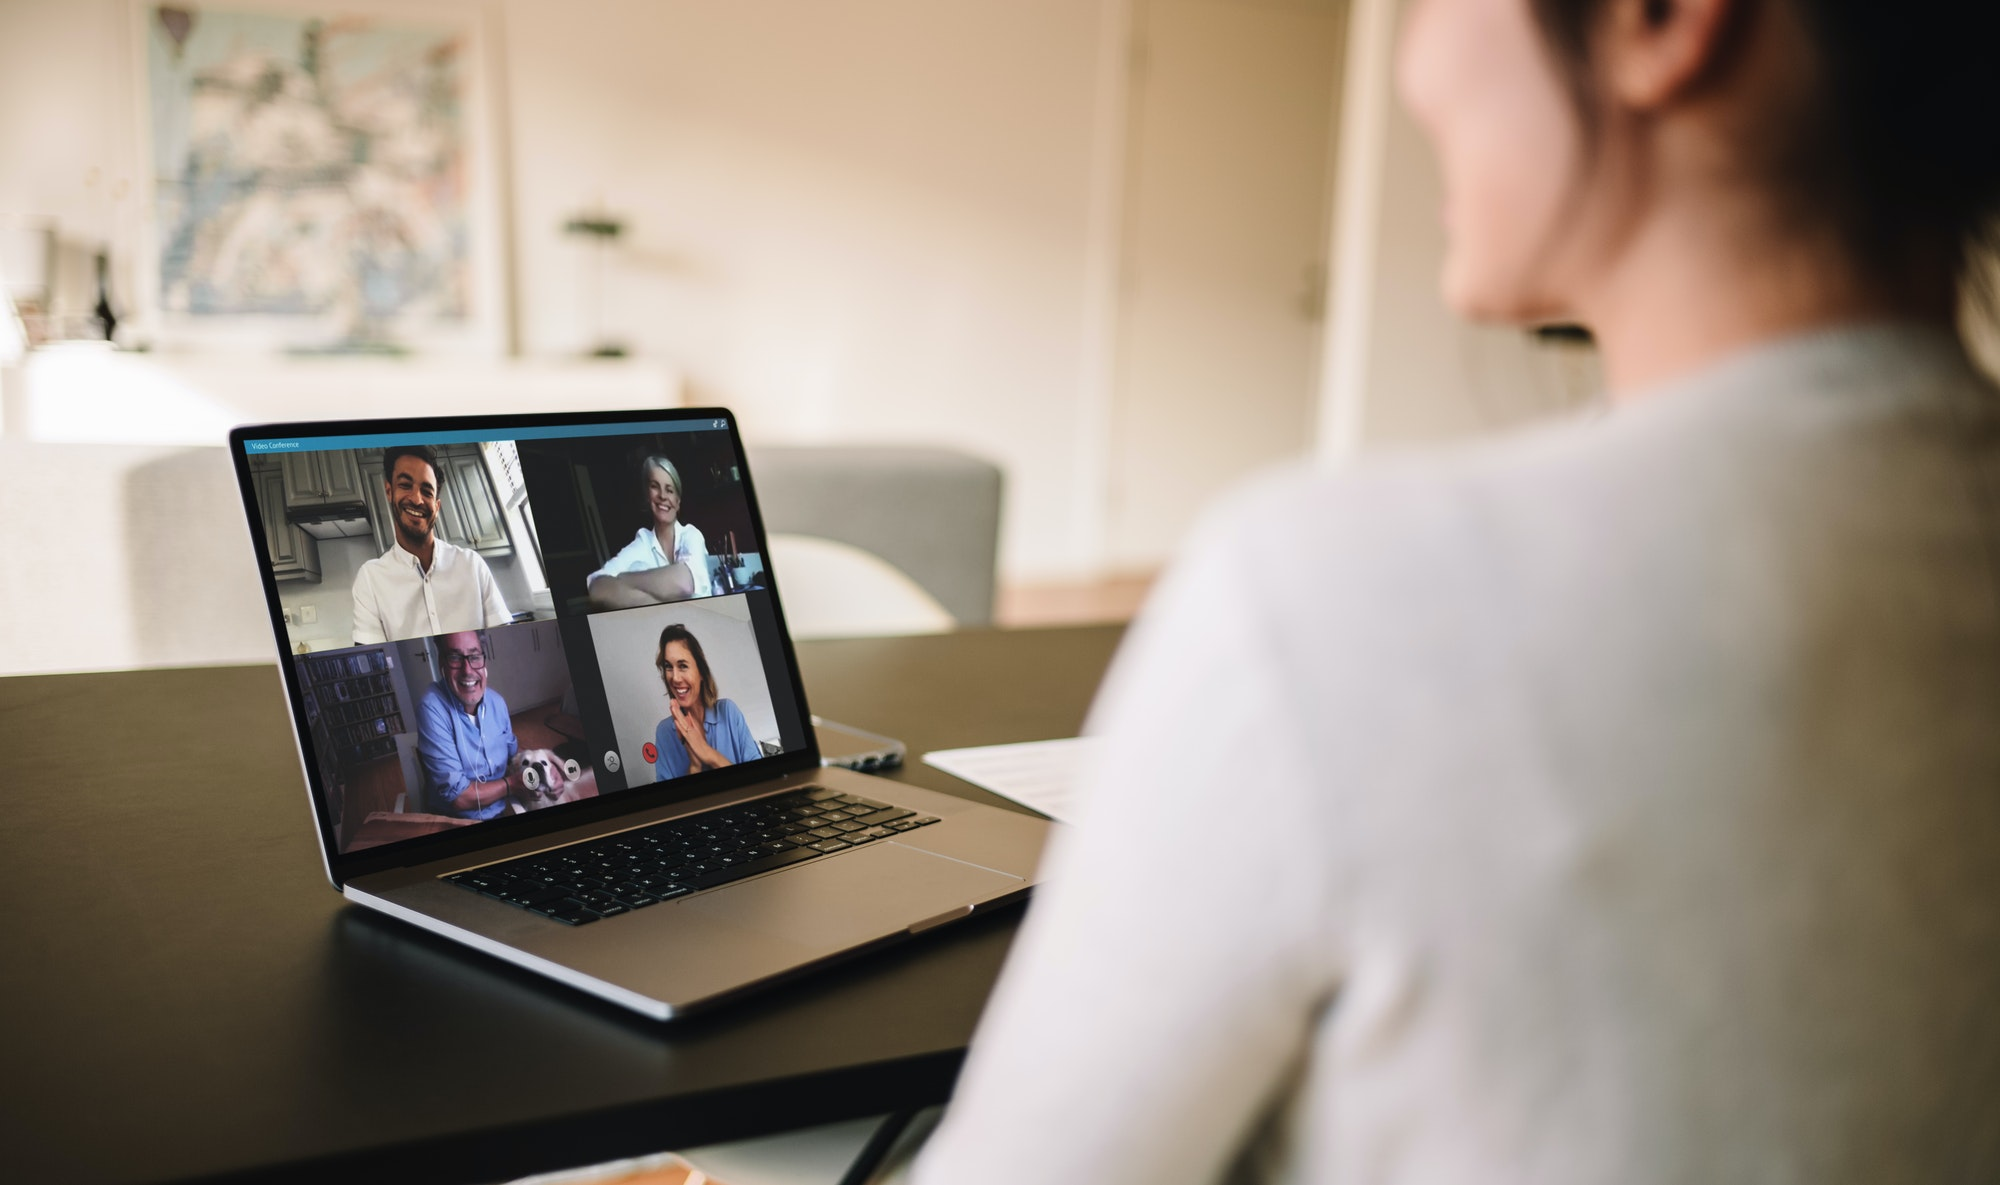 Family meeting online over a video call